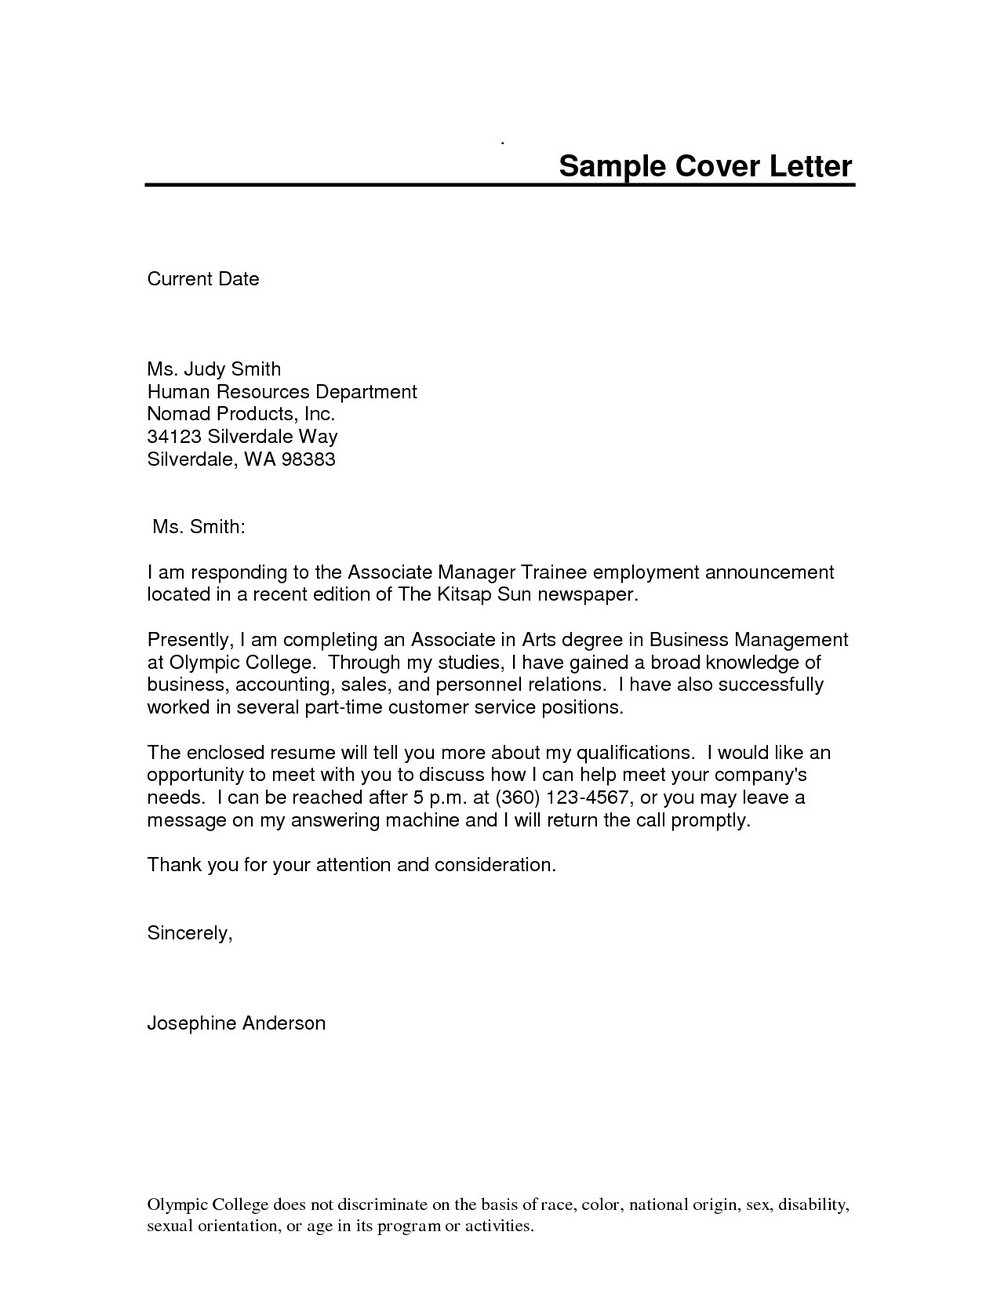 Free Cover Letter Templates 2017